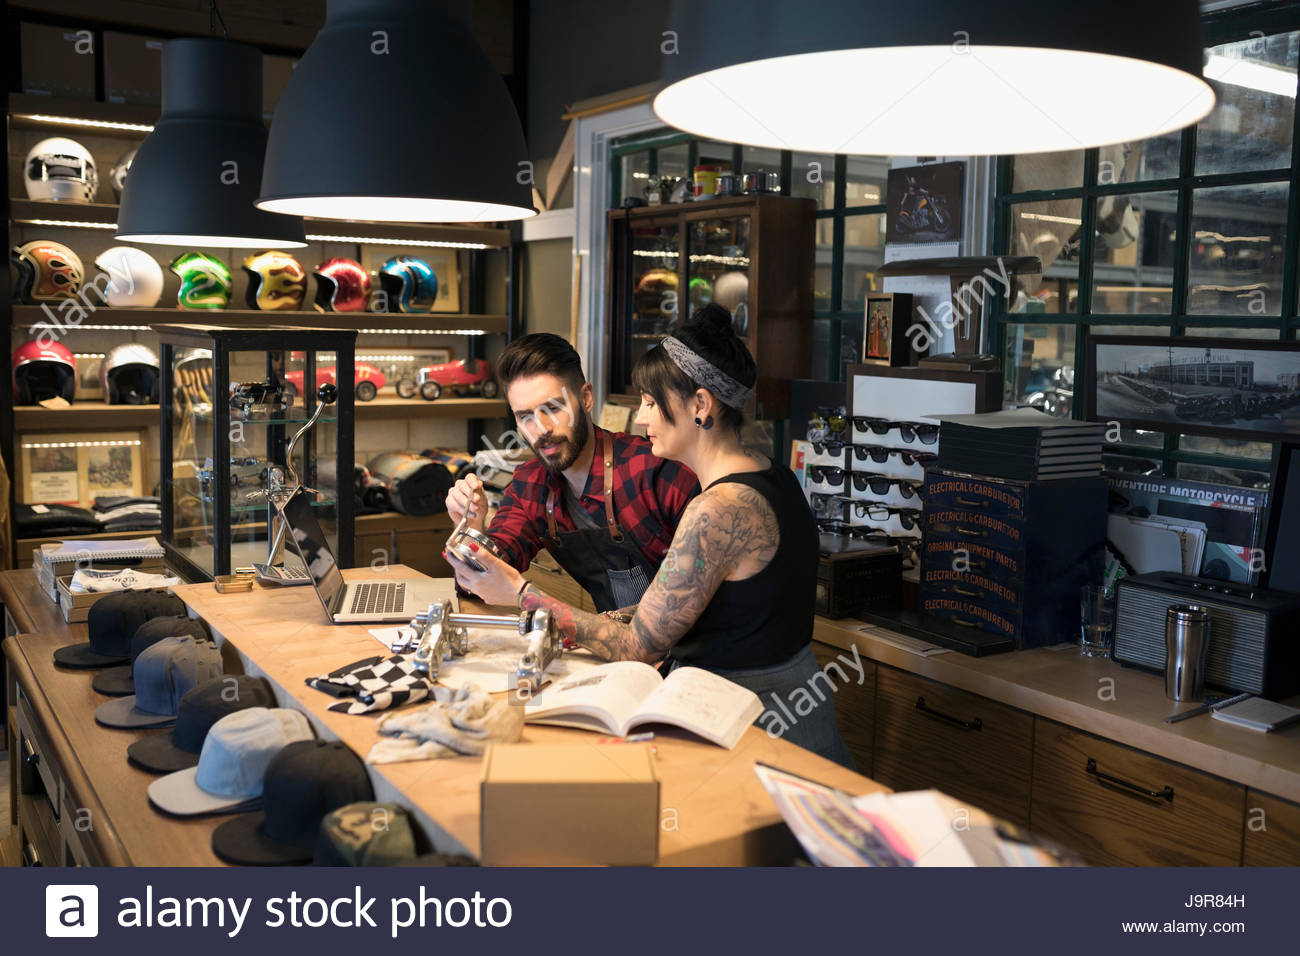 Motorcycle mechanic shop owners examining parts behind counter - Stock Image